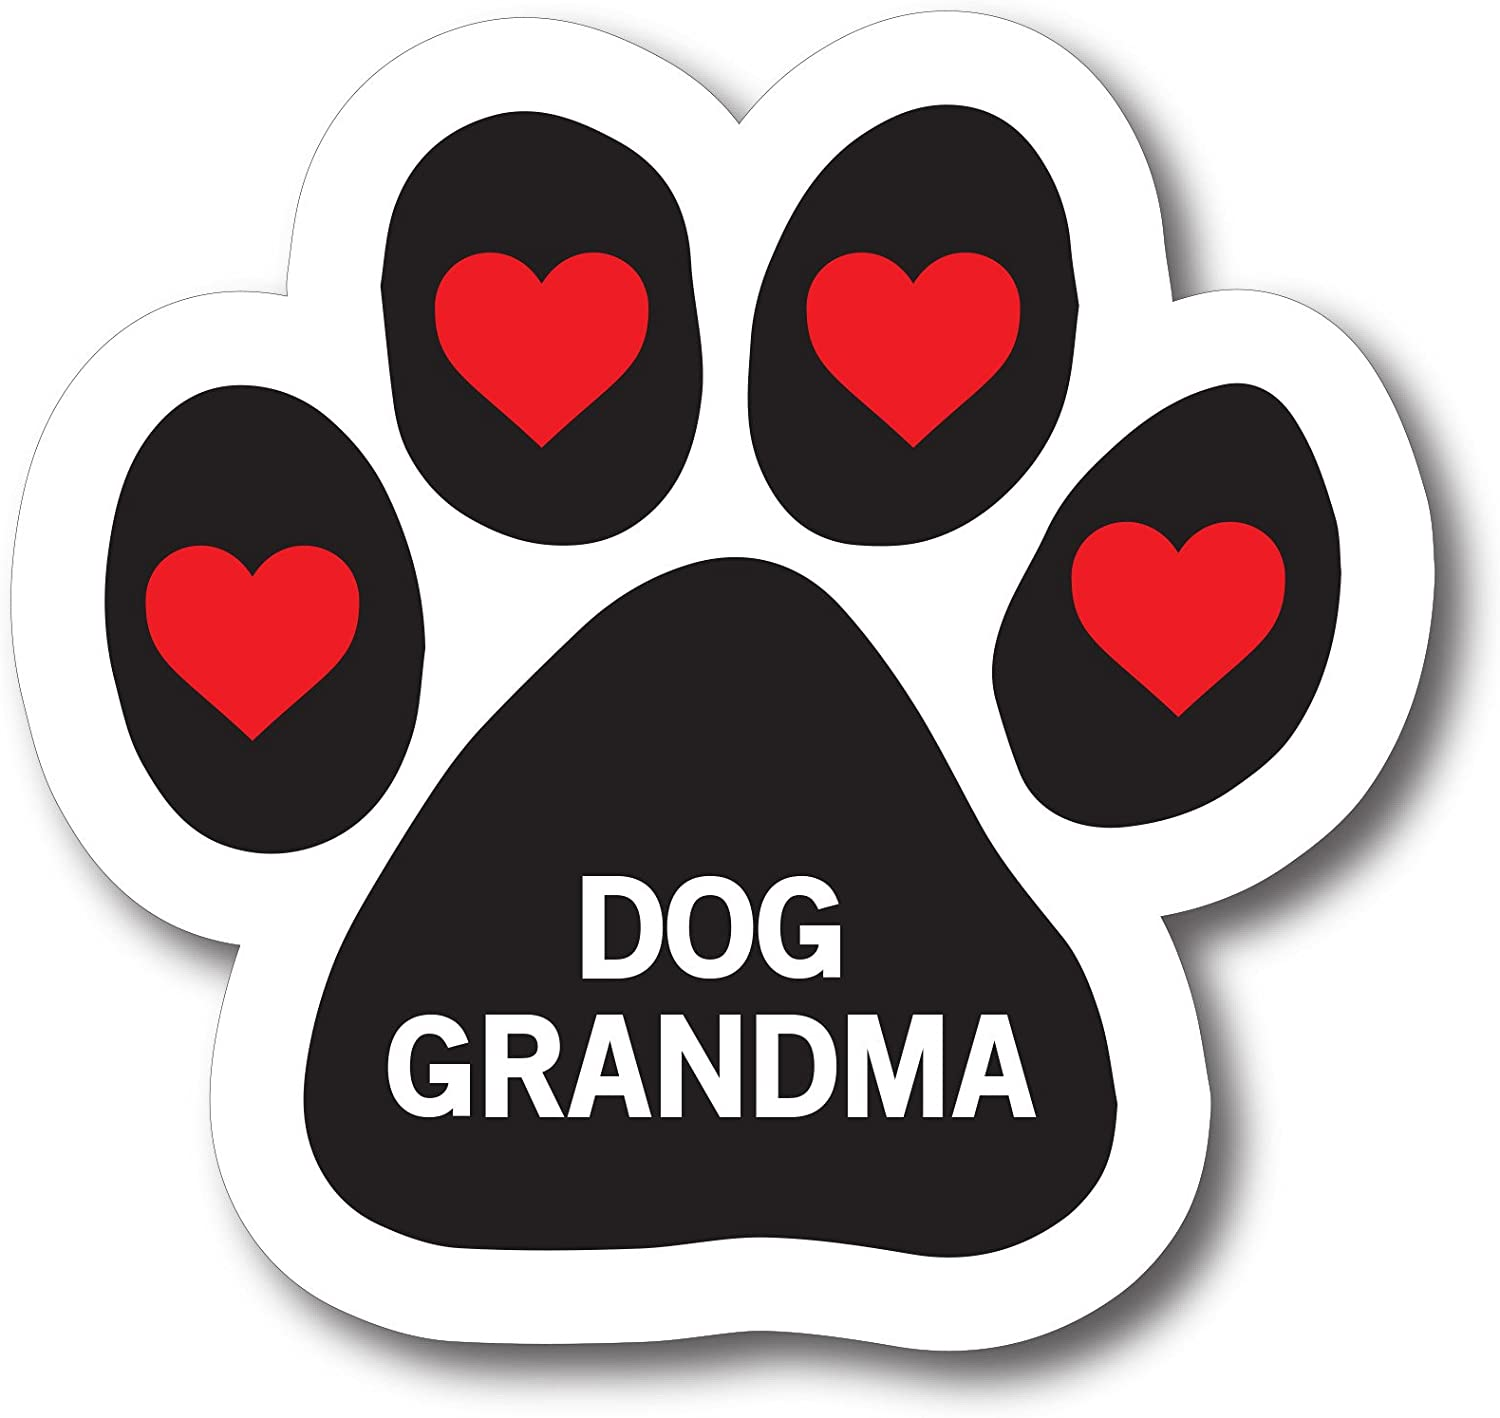 Magnet Me Up Dog Grandma Pawprint Car Magnet Paw Print Auto Truck Decal Magnet